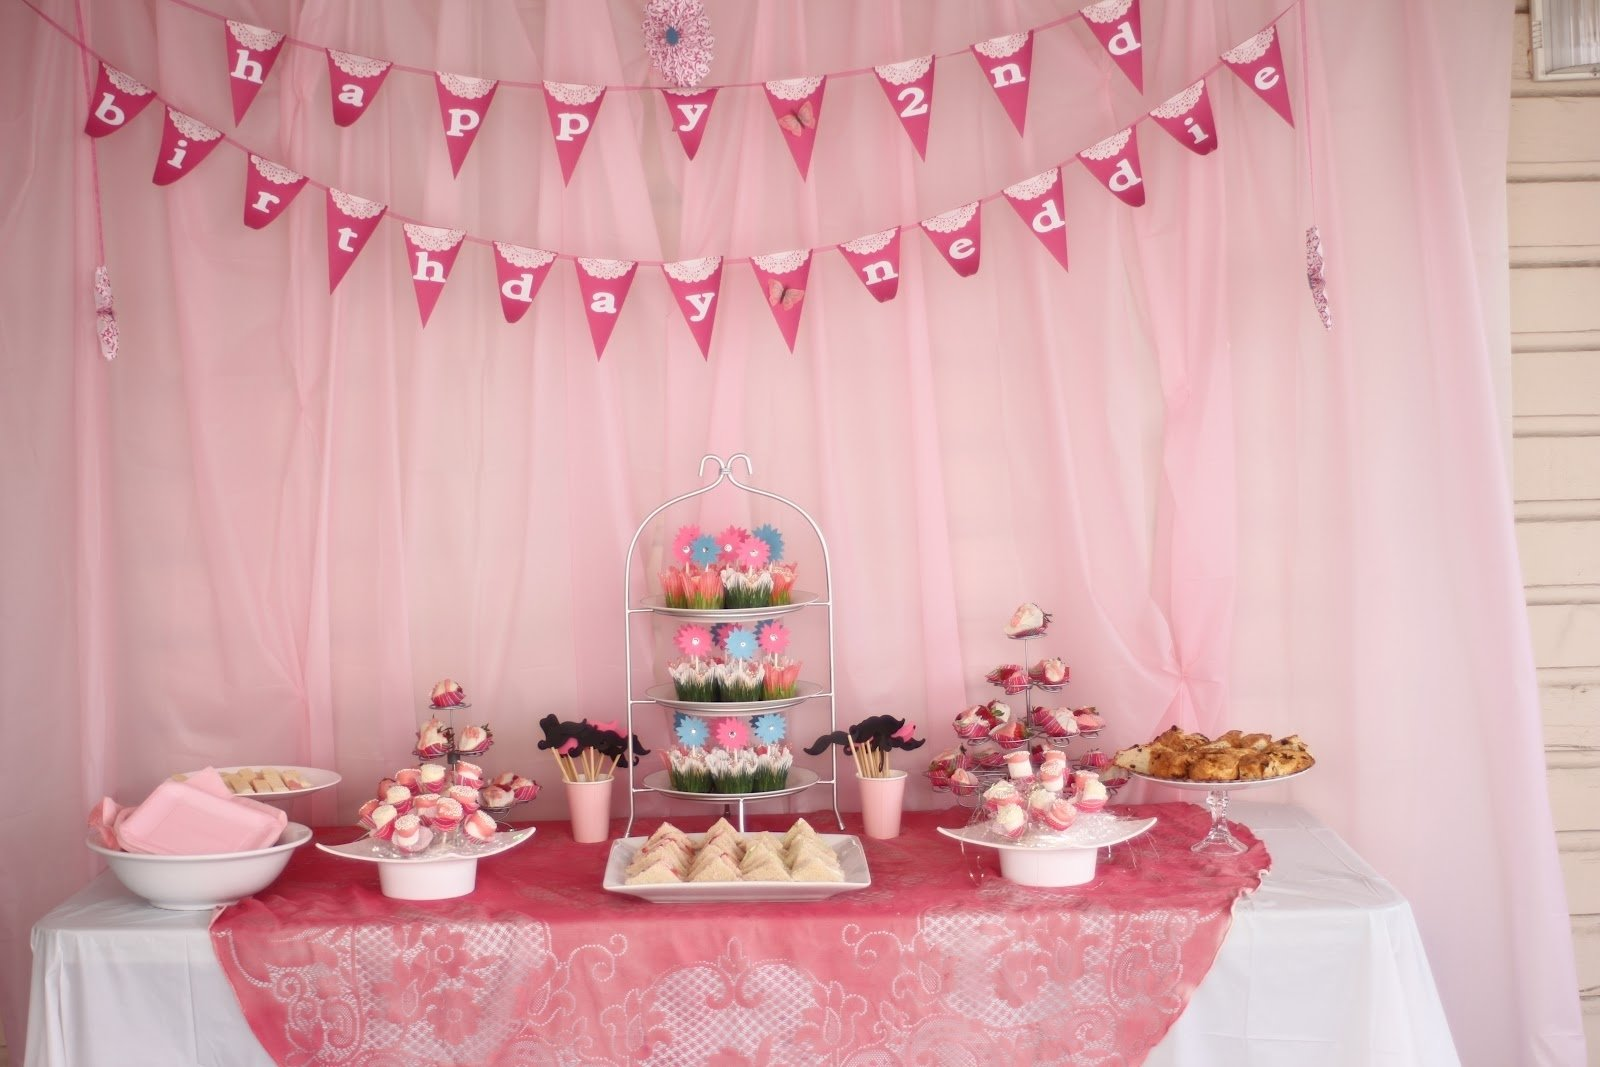 10 Lovable 4 Yr Old Girl Birthday Party Ideas tea party for 2 year old birthday delicate construction 2020